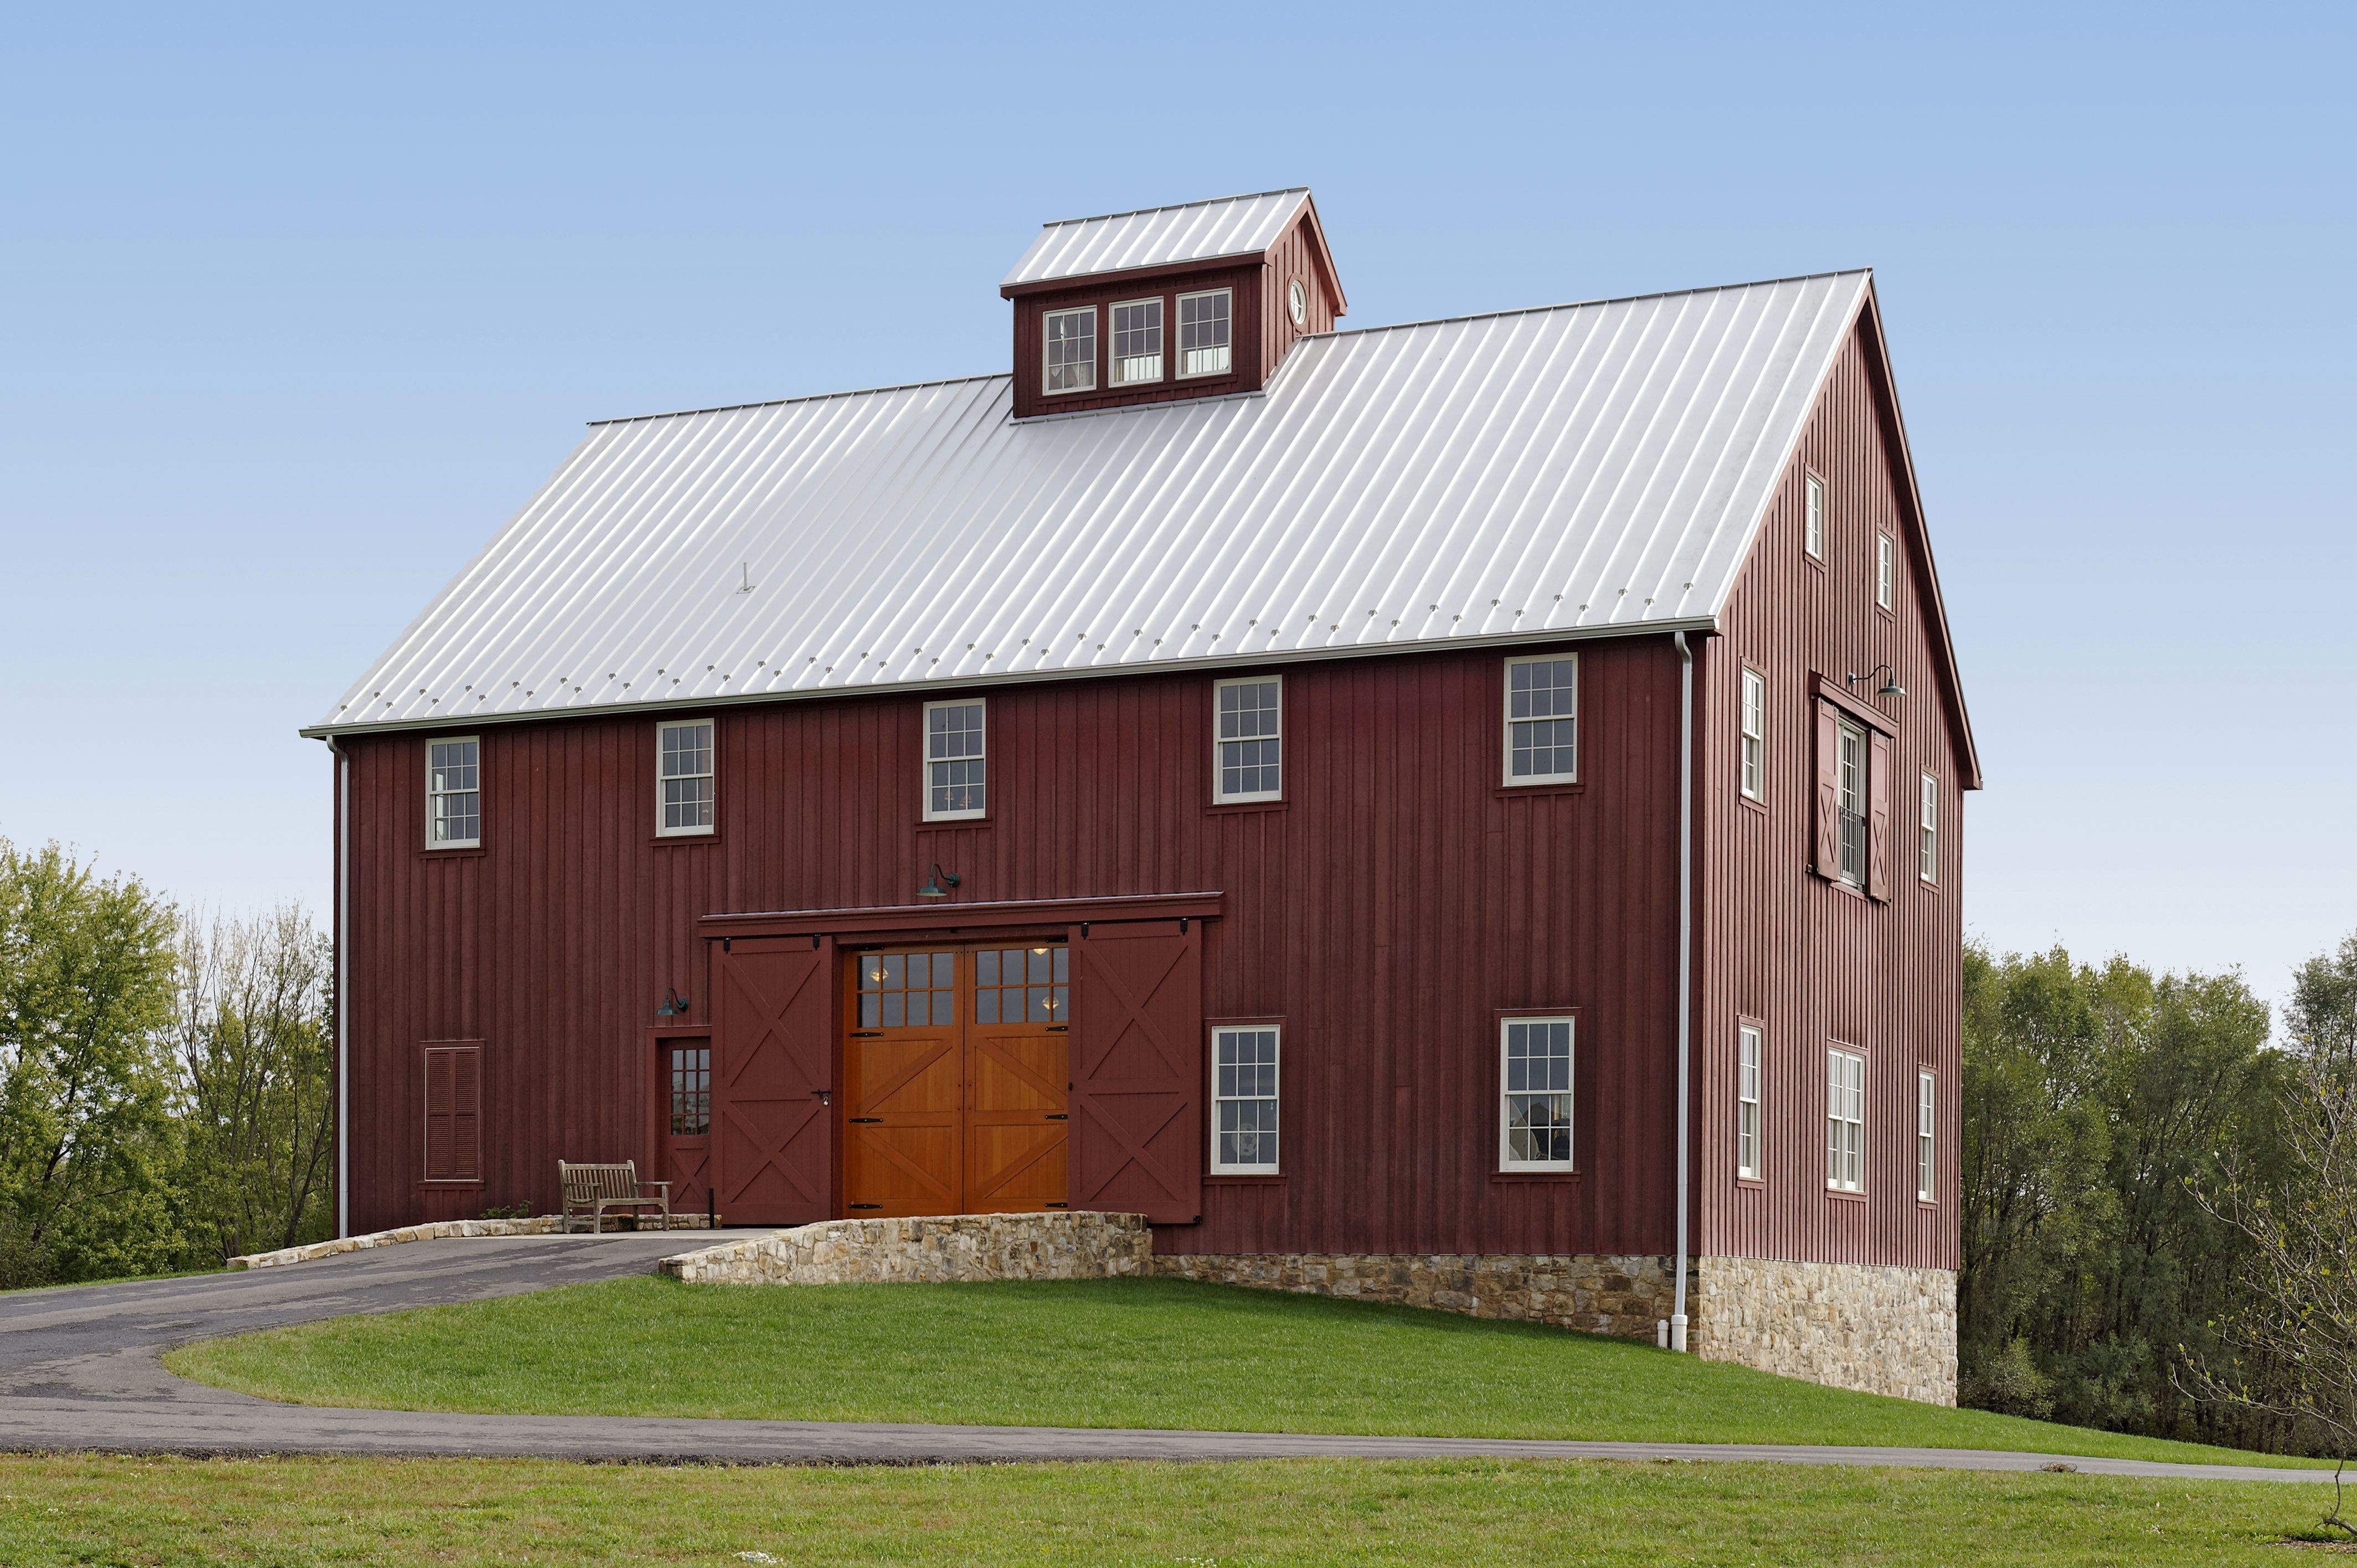 Timber Frame Barns Gallery | New Energy Works | Barn in 2019